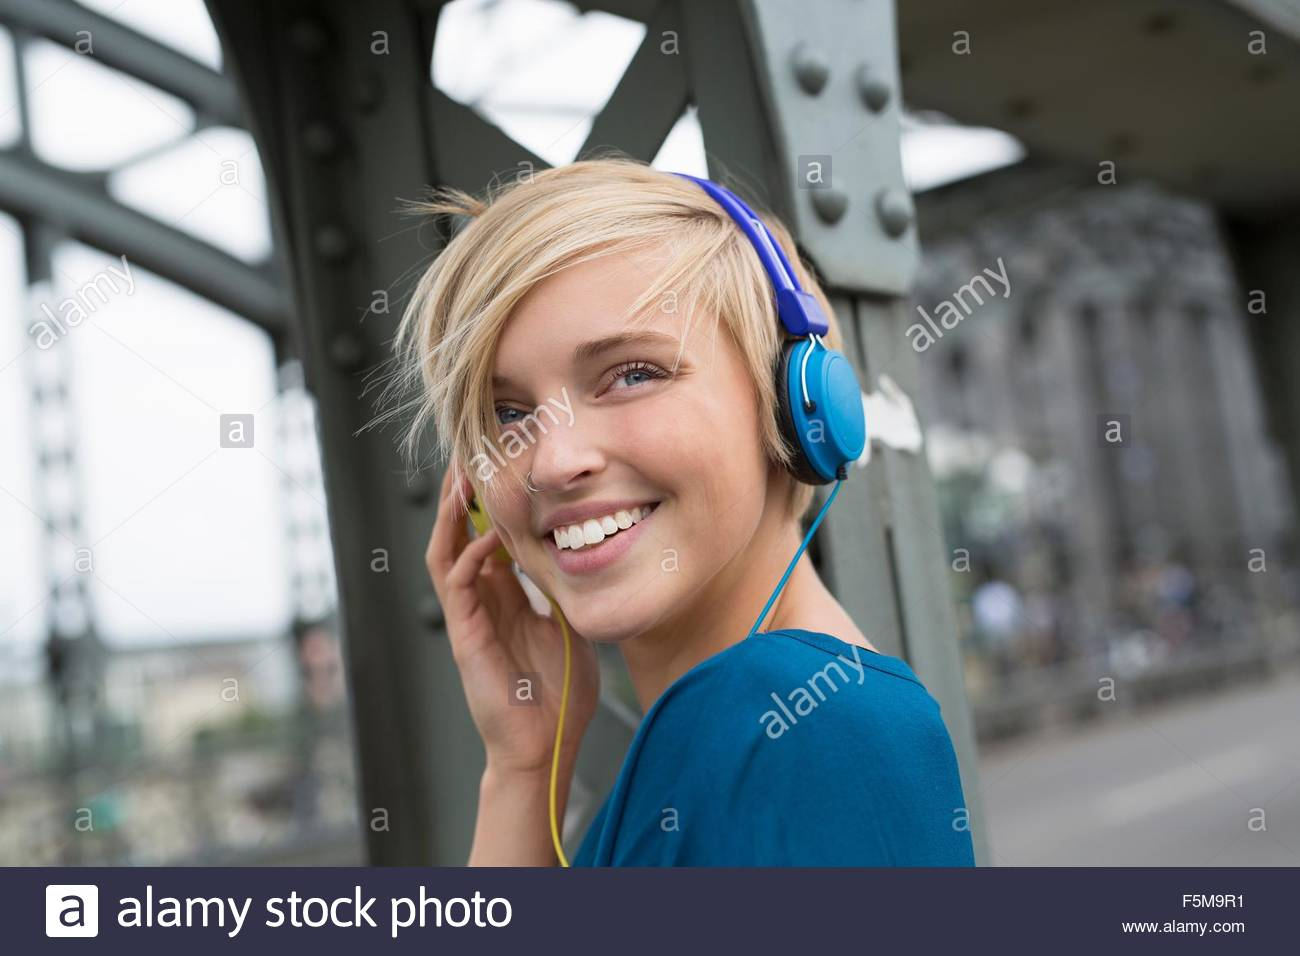 Happy young woman wearing headphones on bridge looking over her shoulder - Stock Image